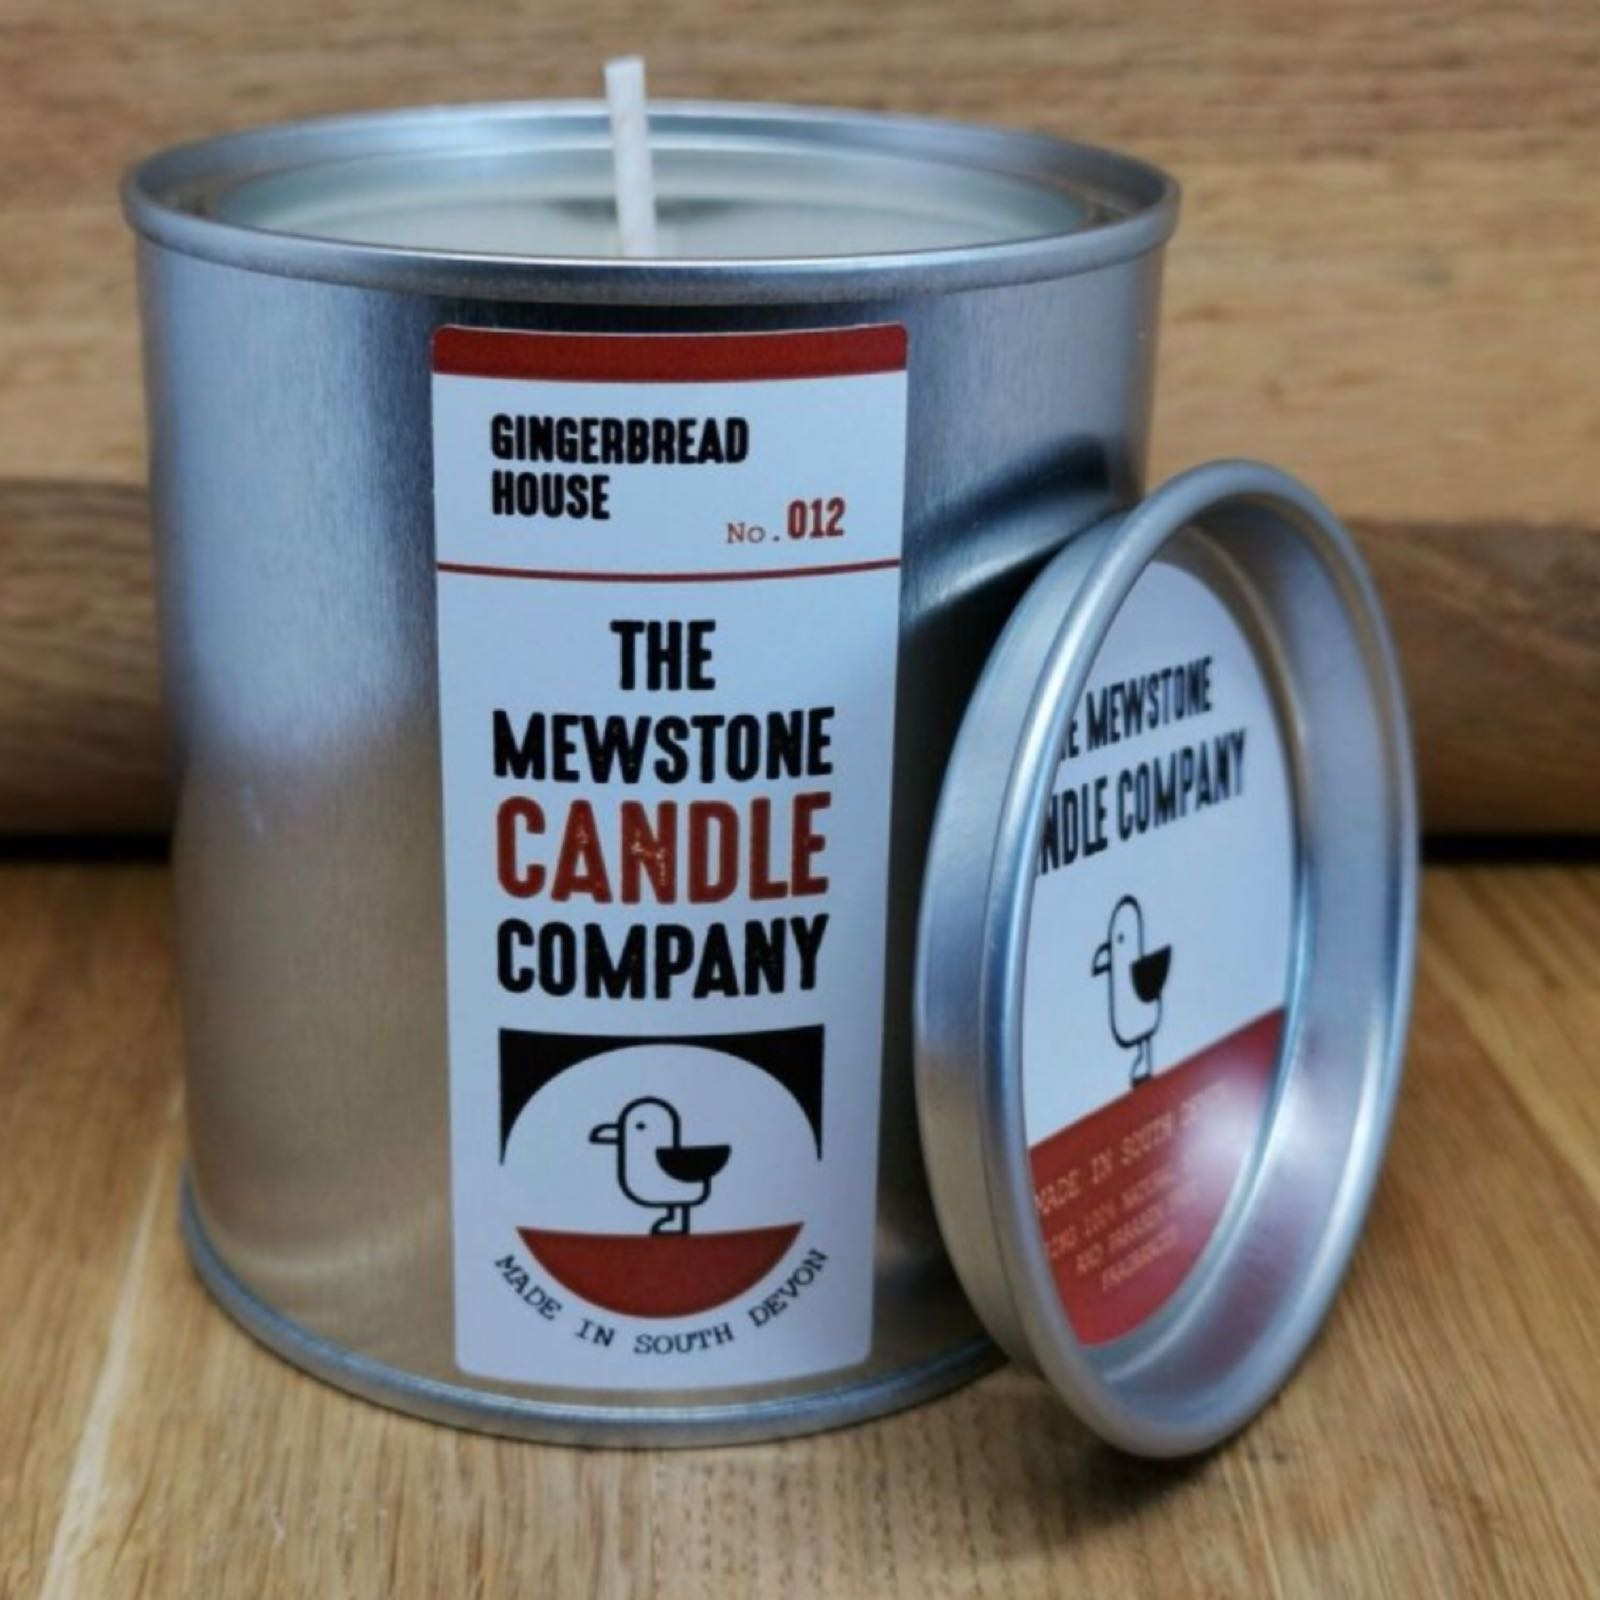 'Gingerbread House' Mewstone Paint Tin Candle